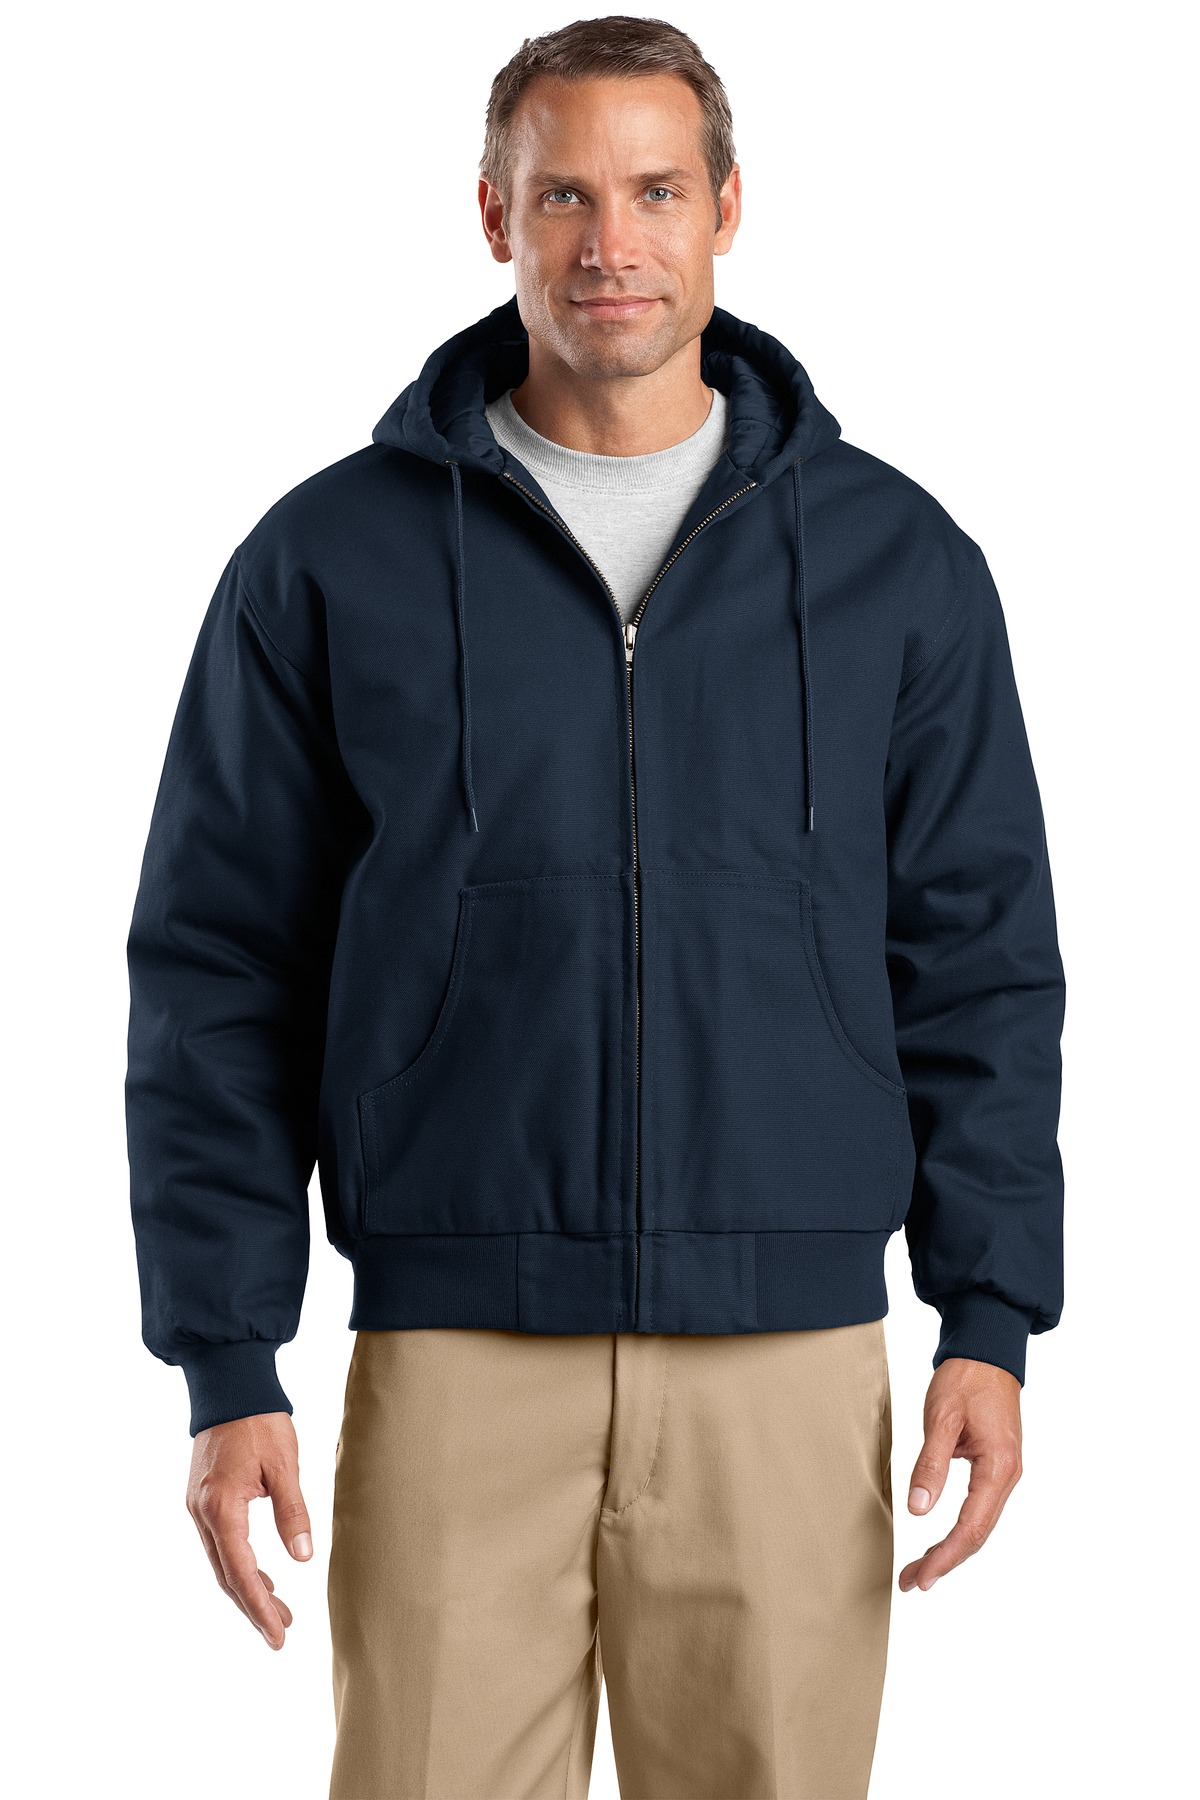 Outerwear-Work-Jackets-9